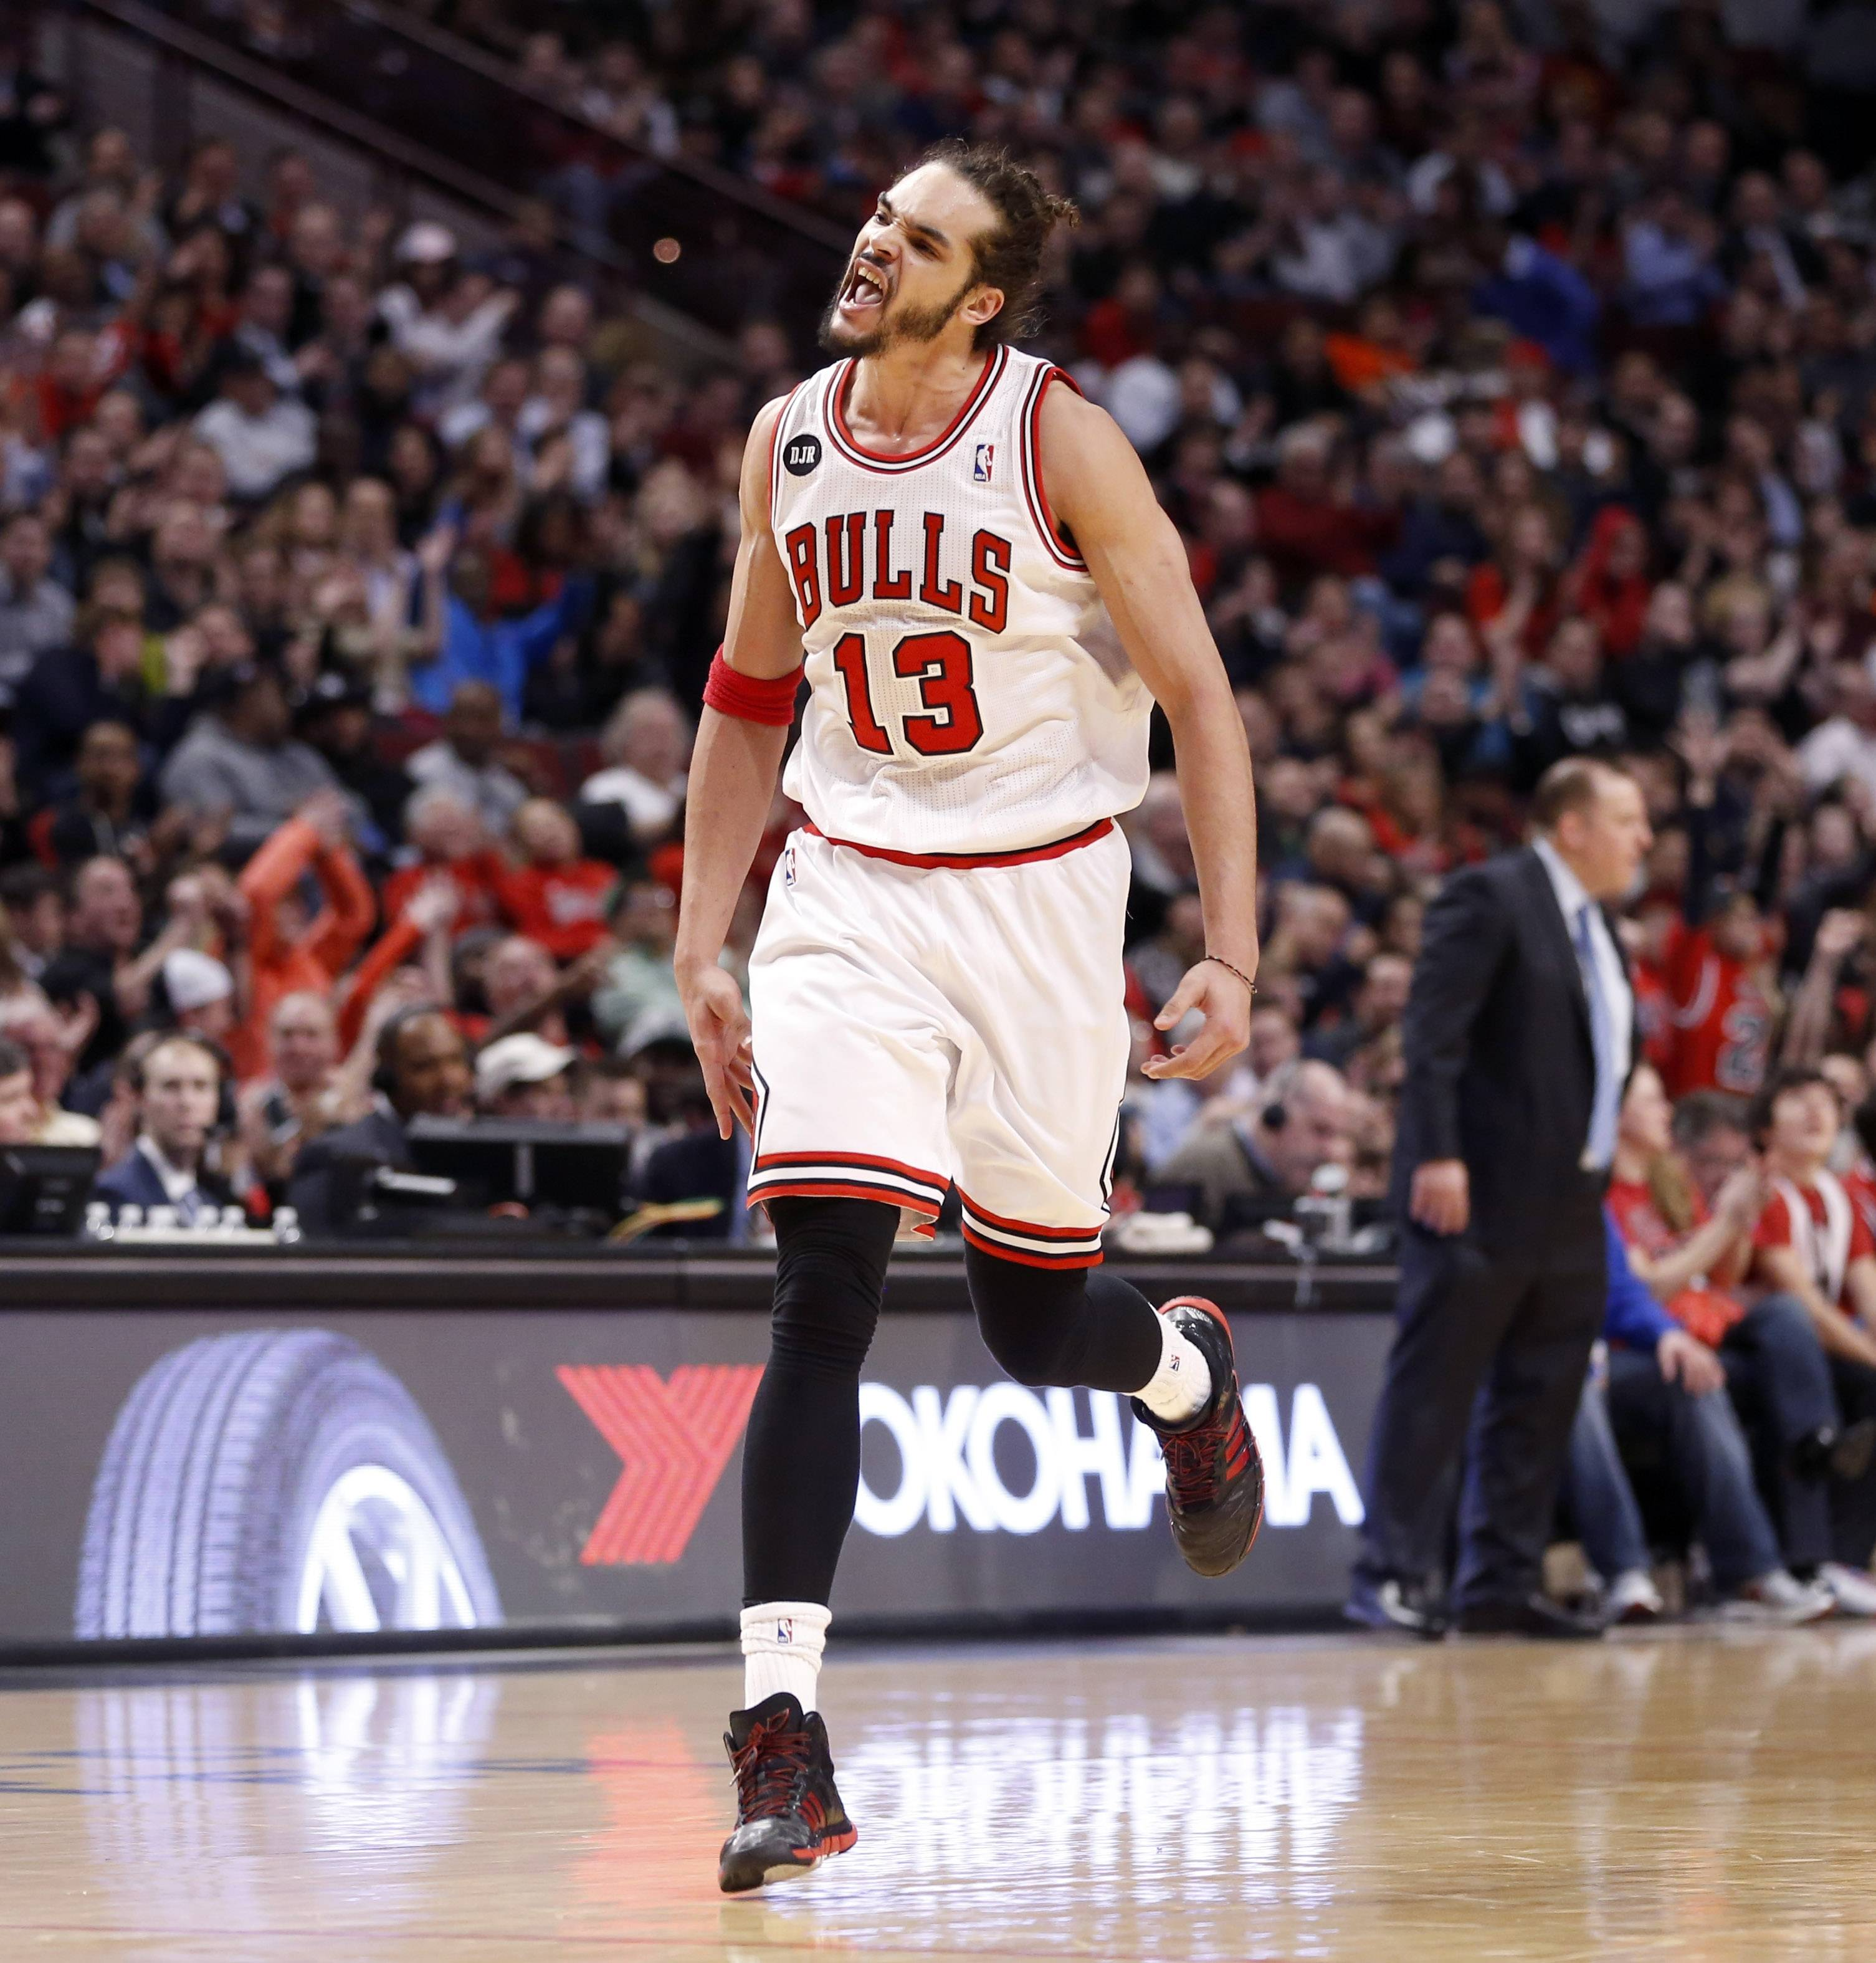 Noah should have defensive player of the year award locked up